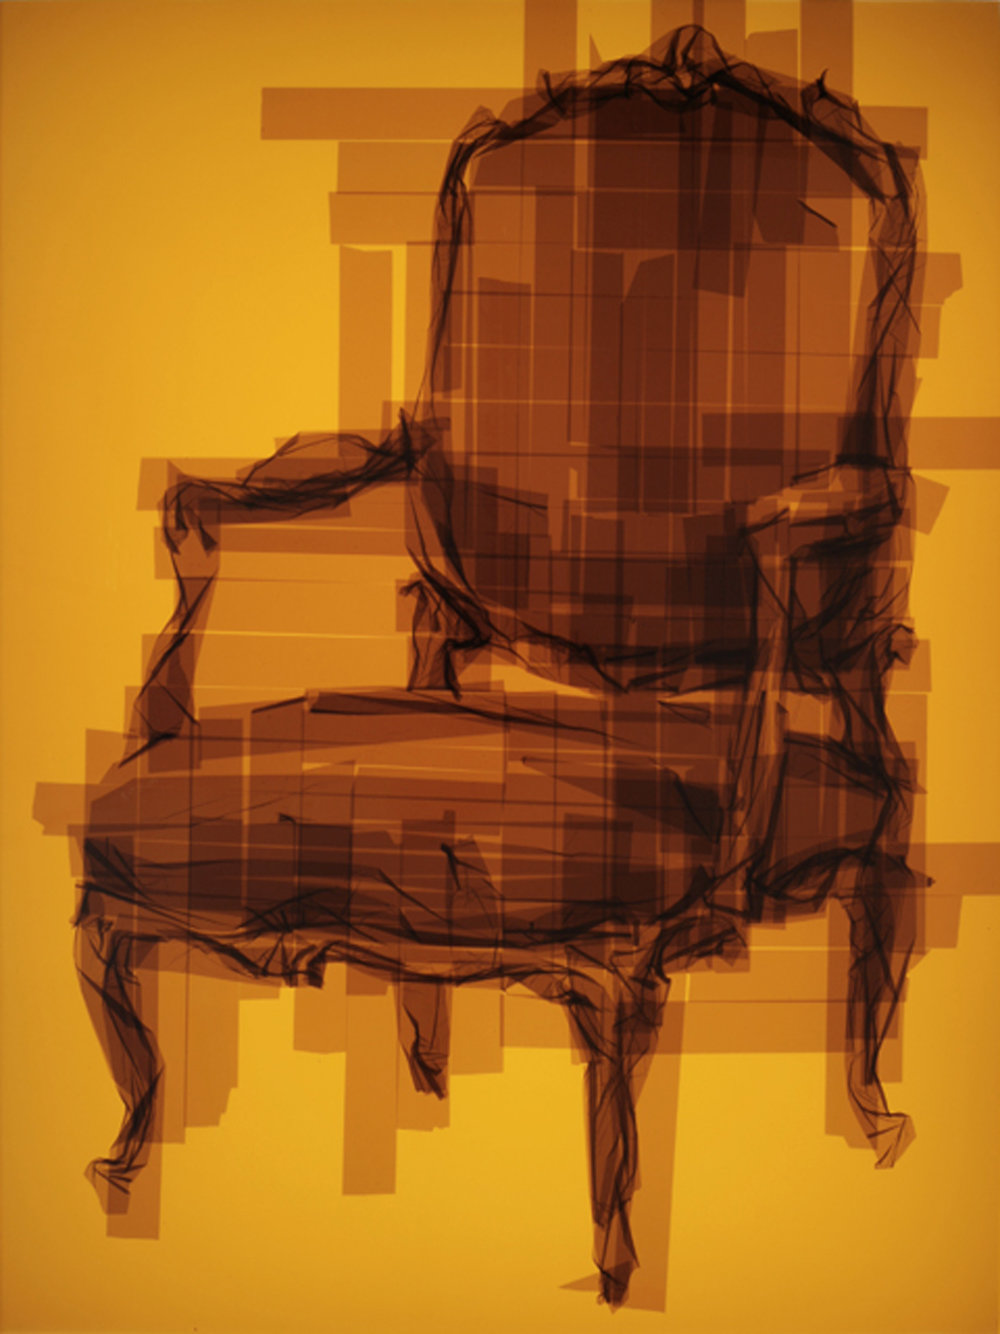 Chair 17, 49 x 37 x 4.5 inches / 124.5 x 94 x 11.5 cm, translucent packaging tape on acrylic panels with LED light box, 2015